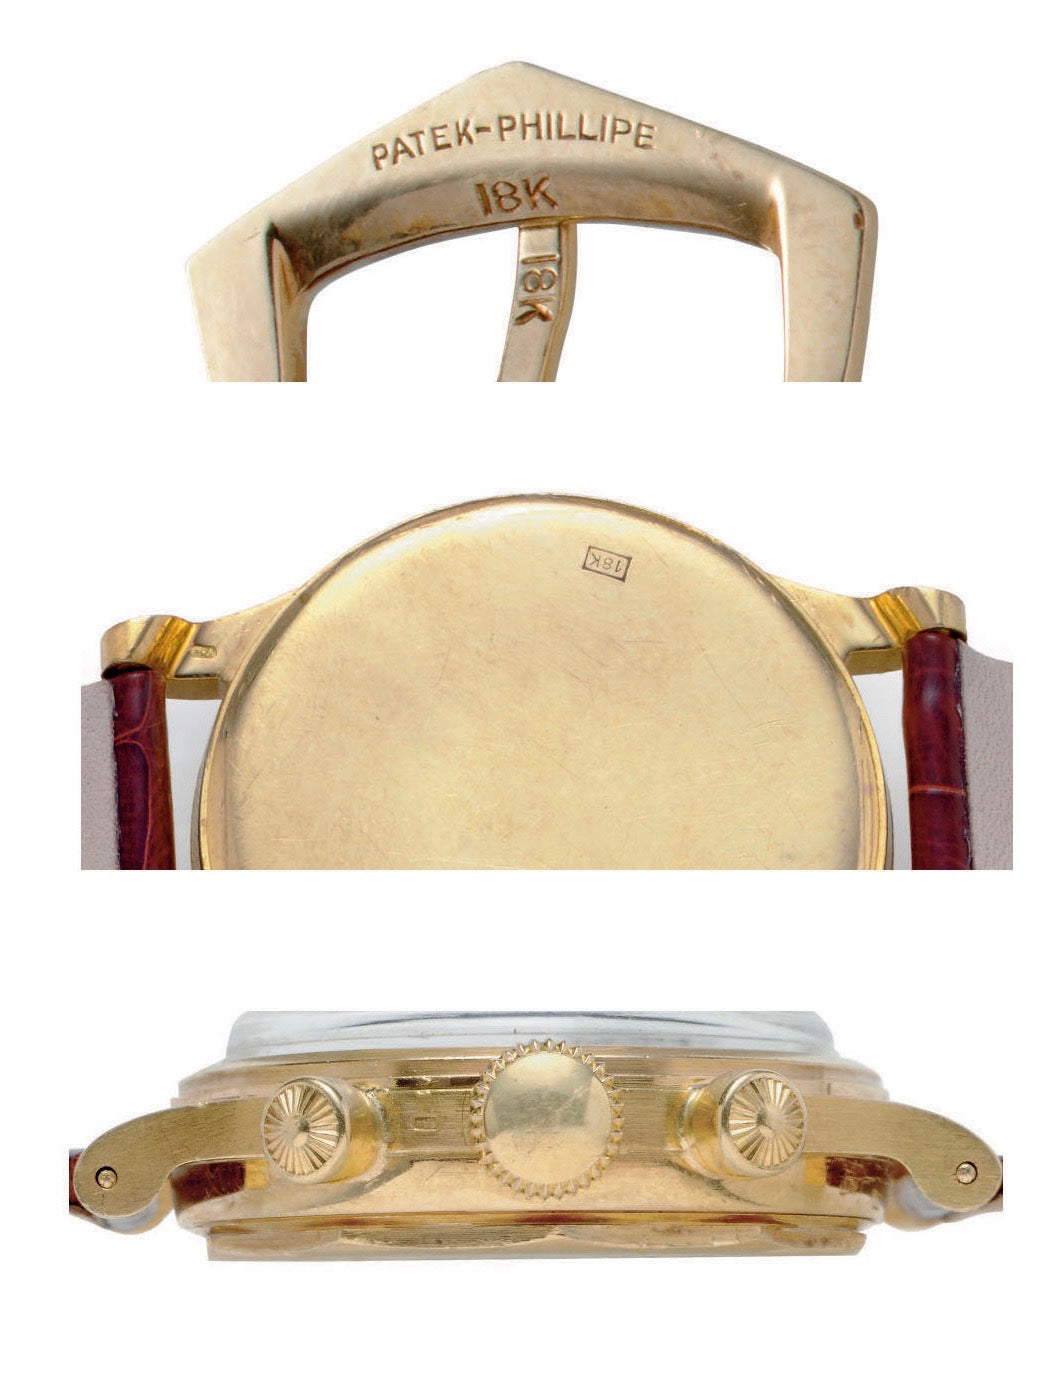 Patek Philippe misspelled on the buckle Patek Phillipe buckle for A Collected Man London